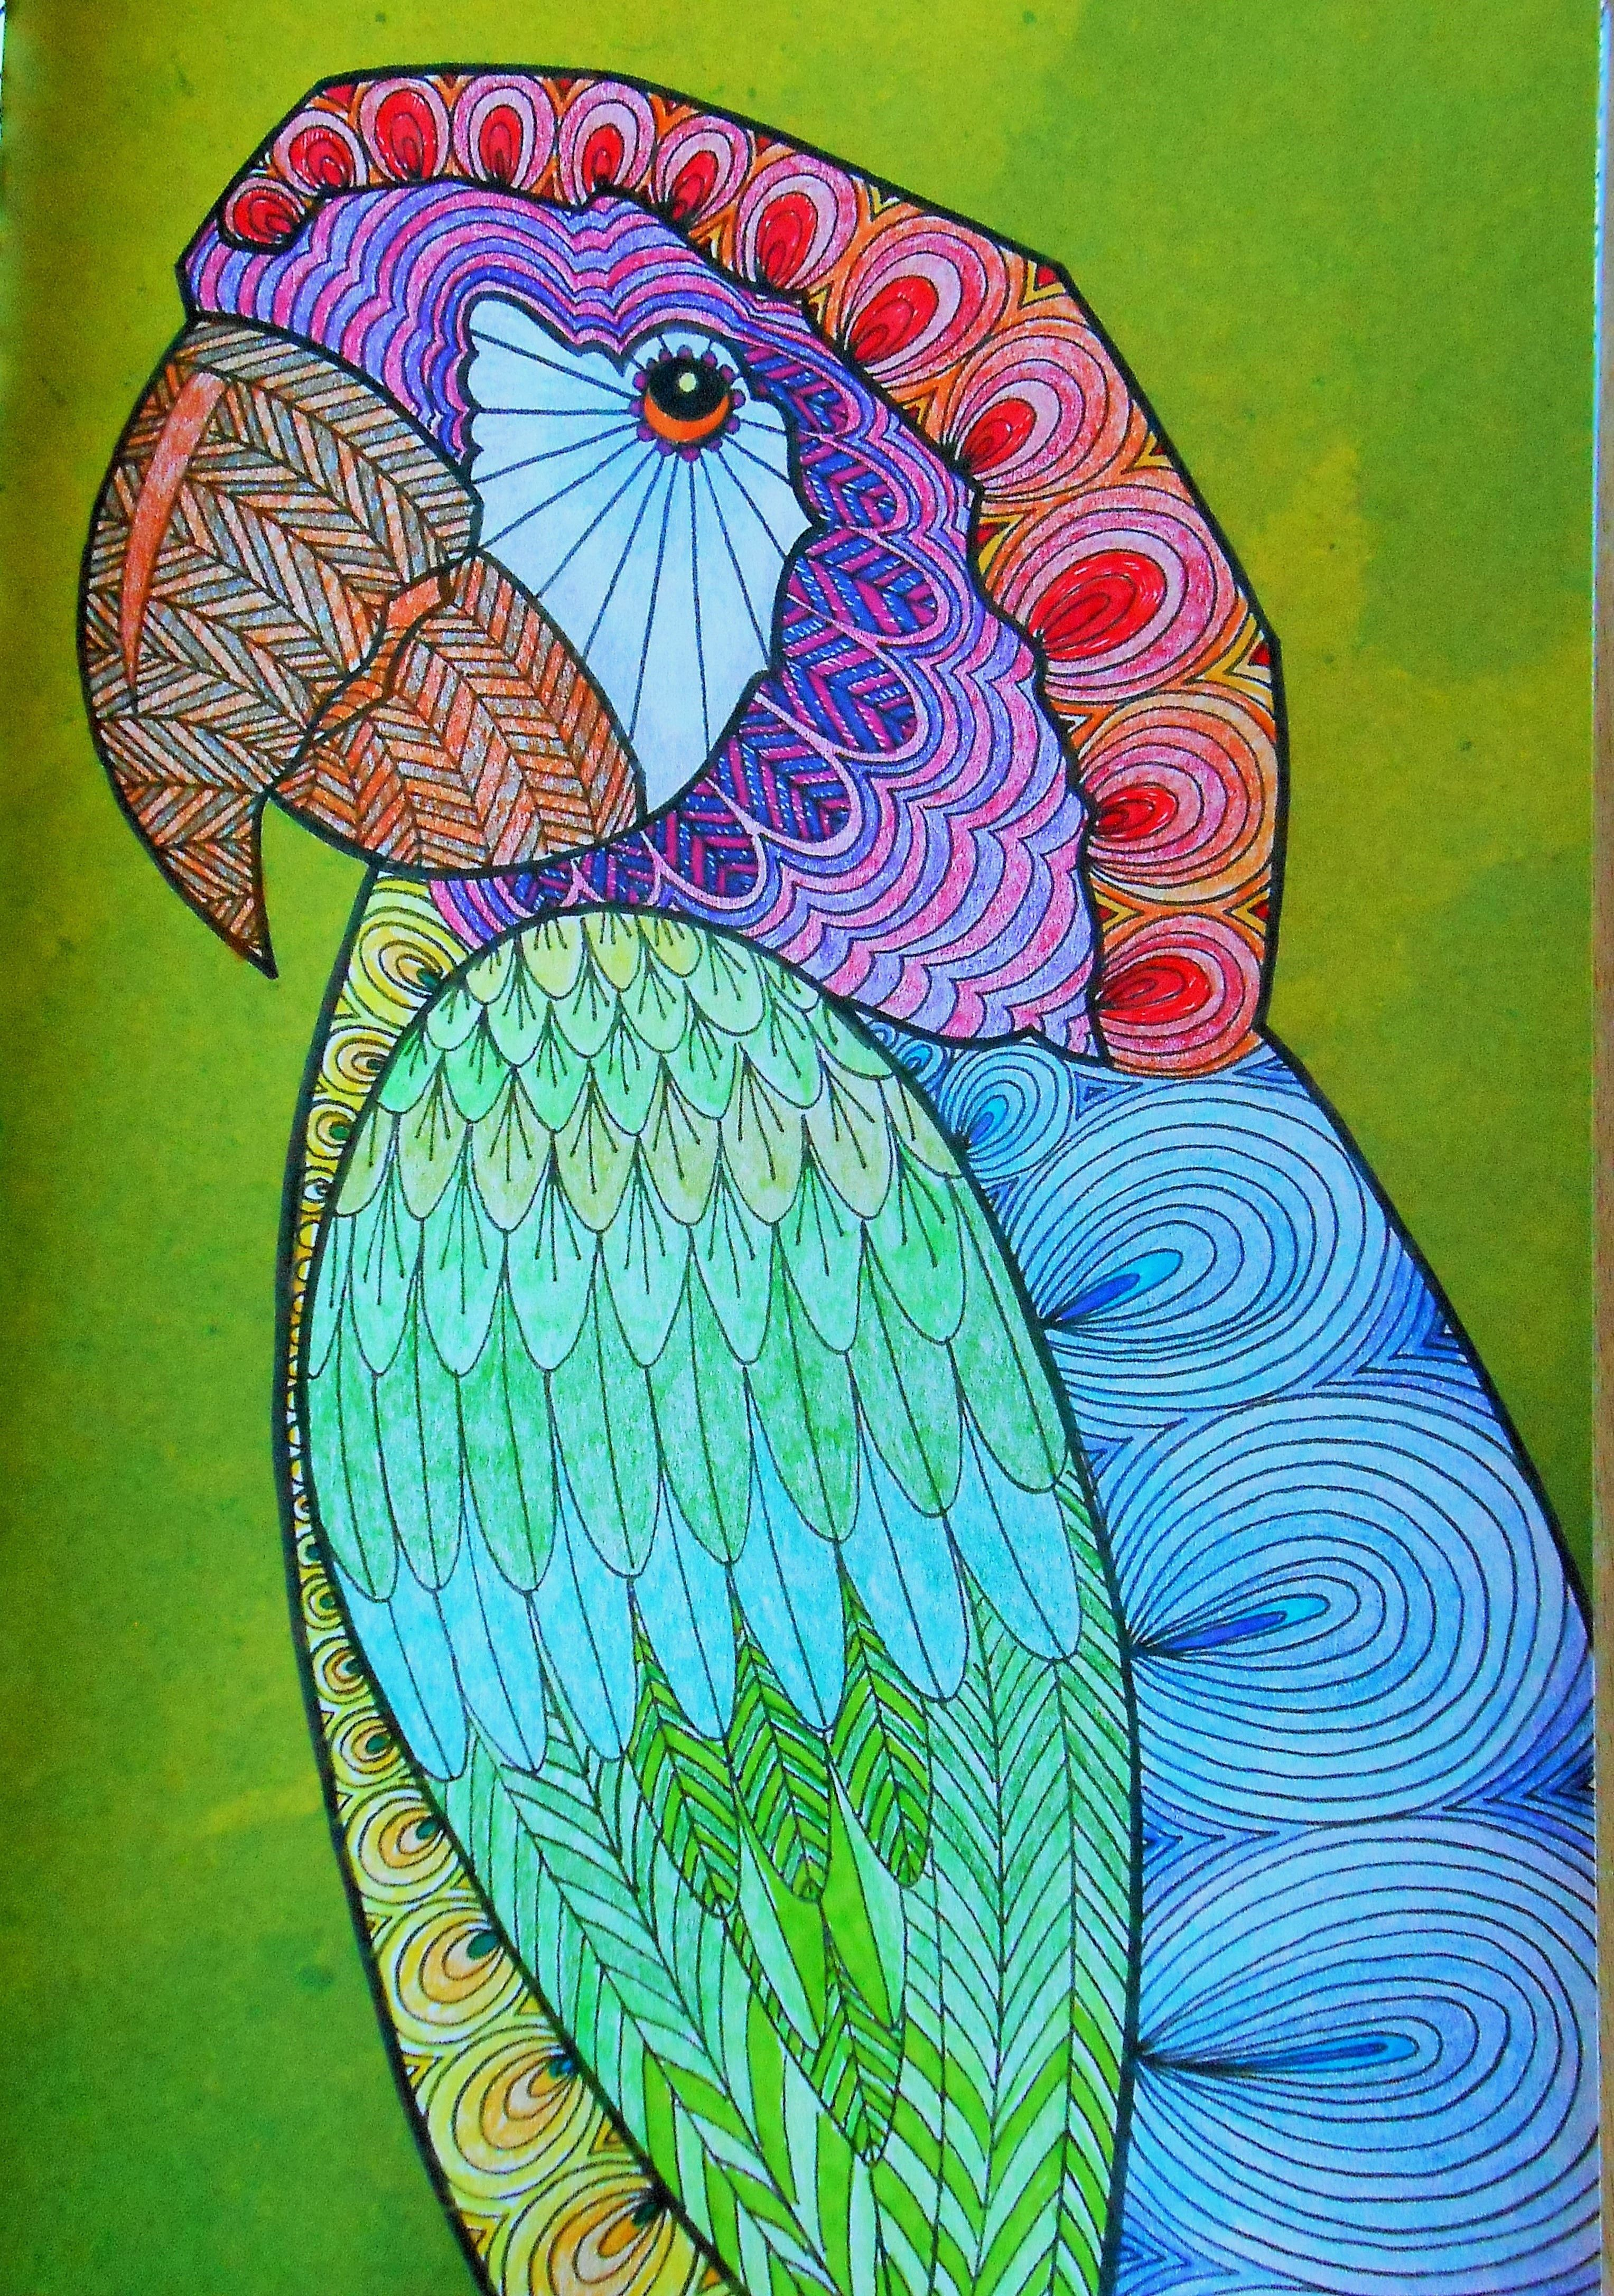 Rainbow Parrot From Art Therapy An Anti Stress Colouring Book Art Therapy Coloring Book Colouring Art Therapy Color Pencil Art